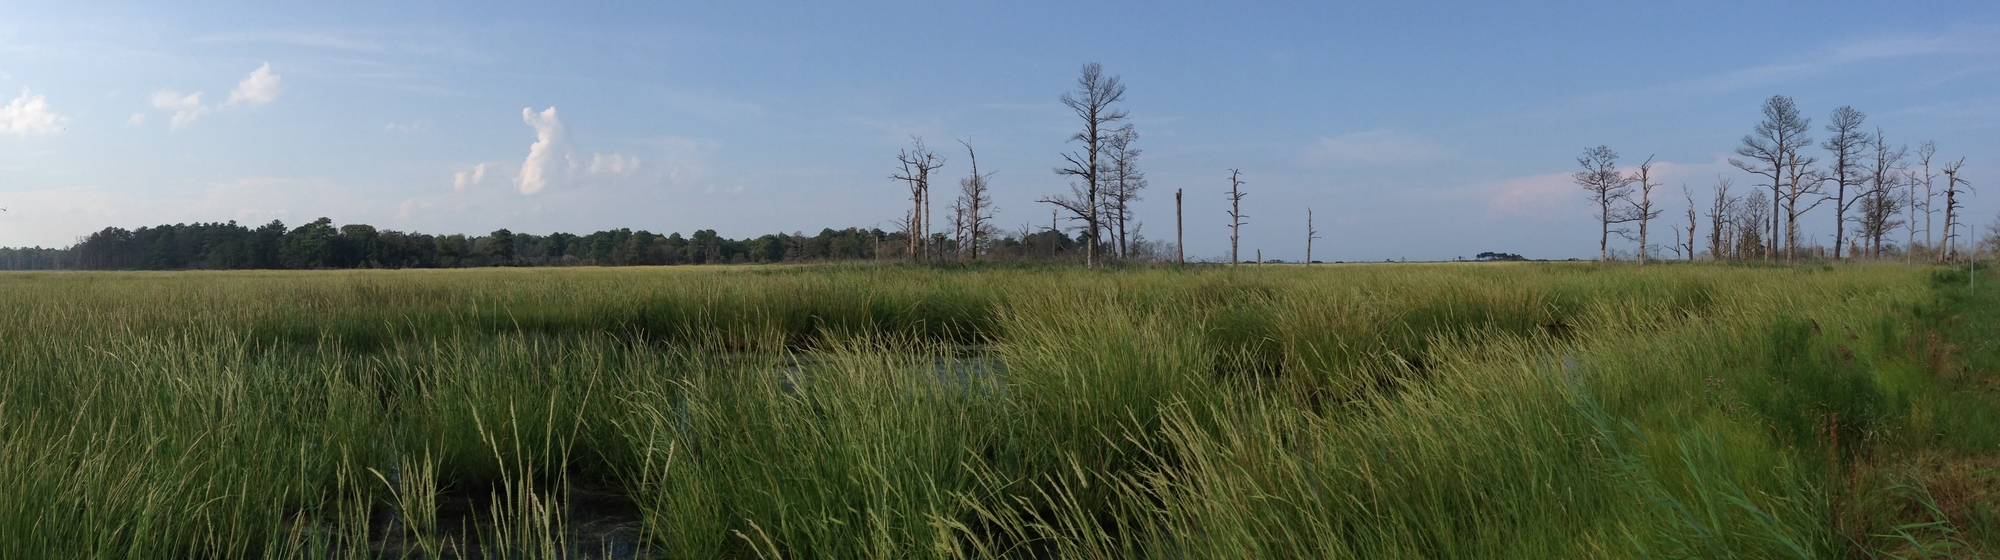 Milford Neck, Big Stone Beach Marsh